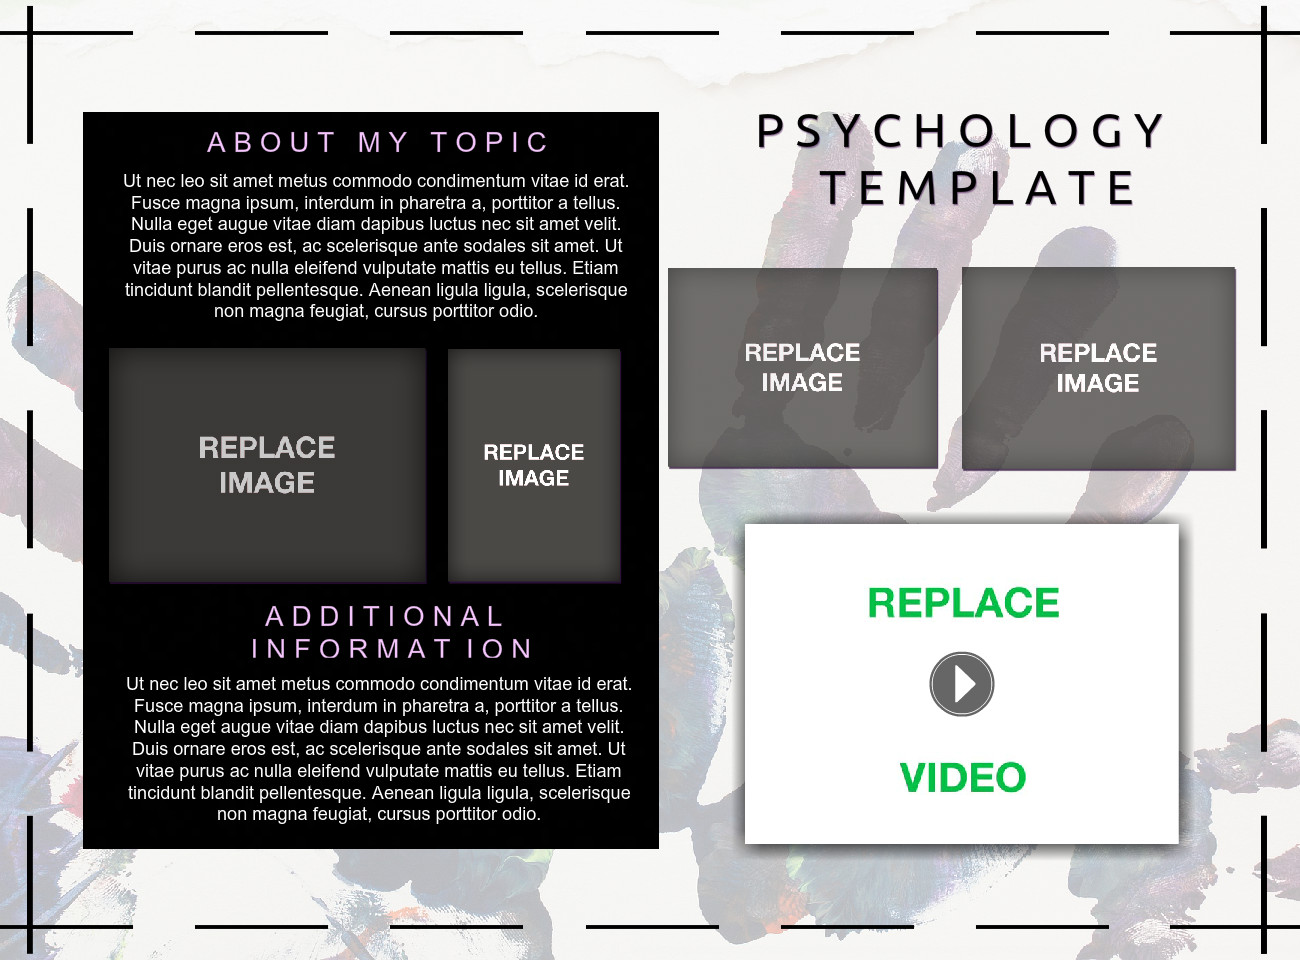 [2012] Mitchell Phelps (Health Period 3 Spring 16): Psychology Template